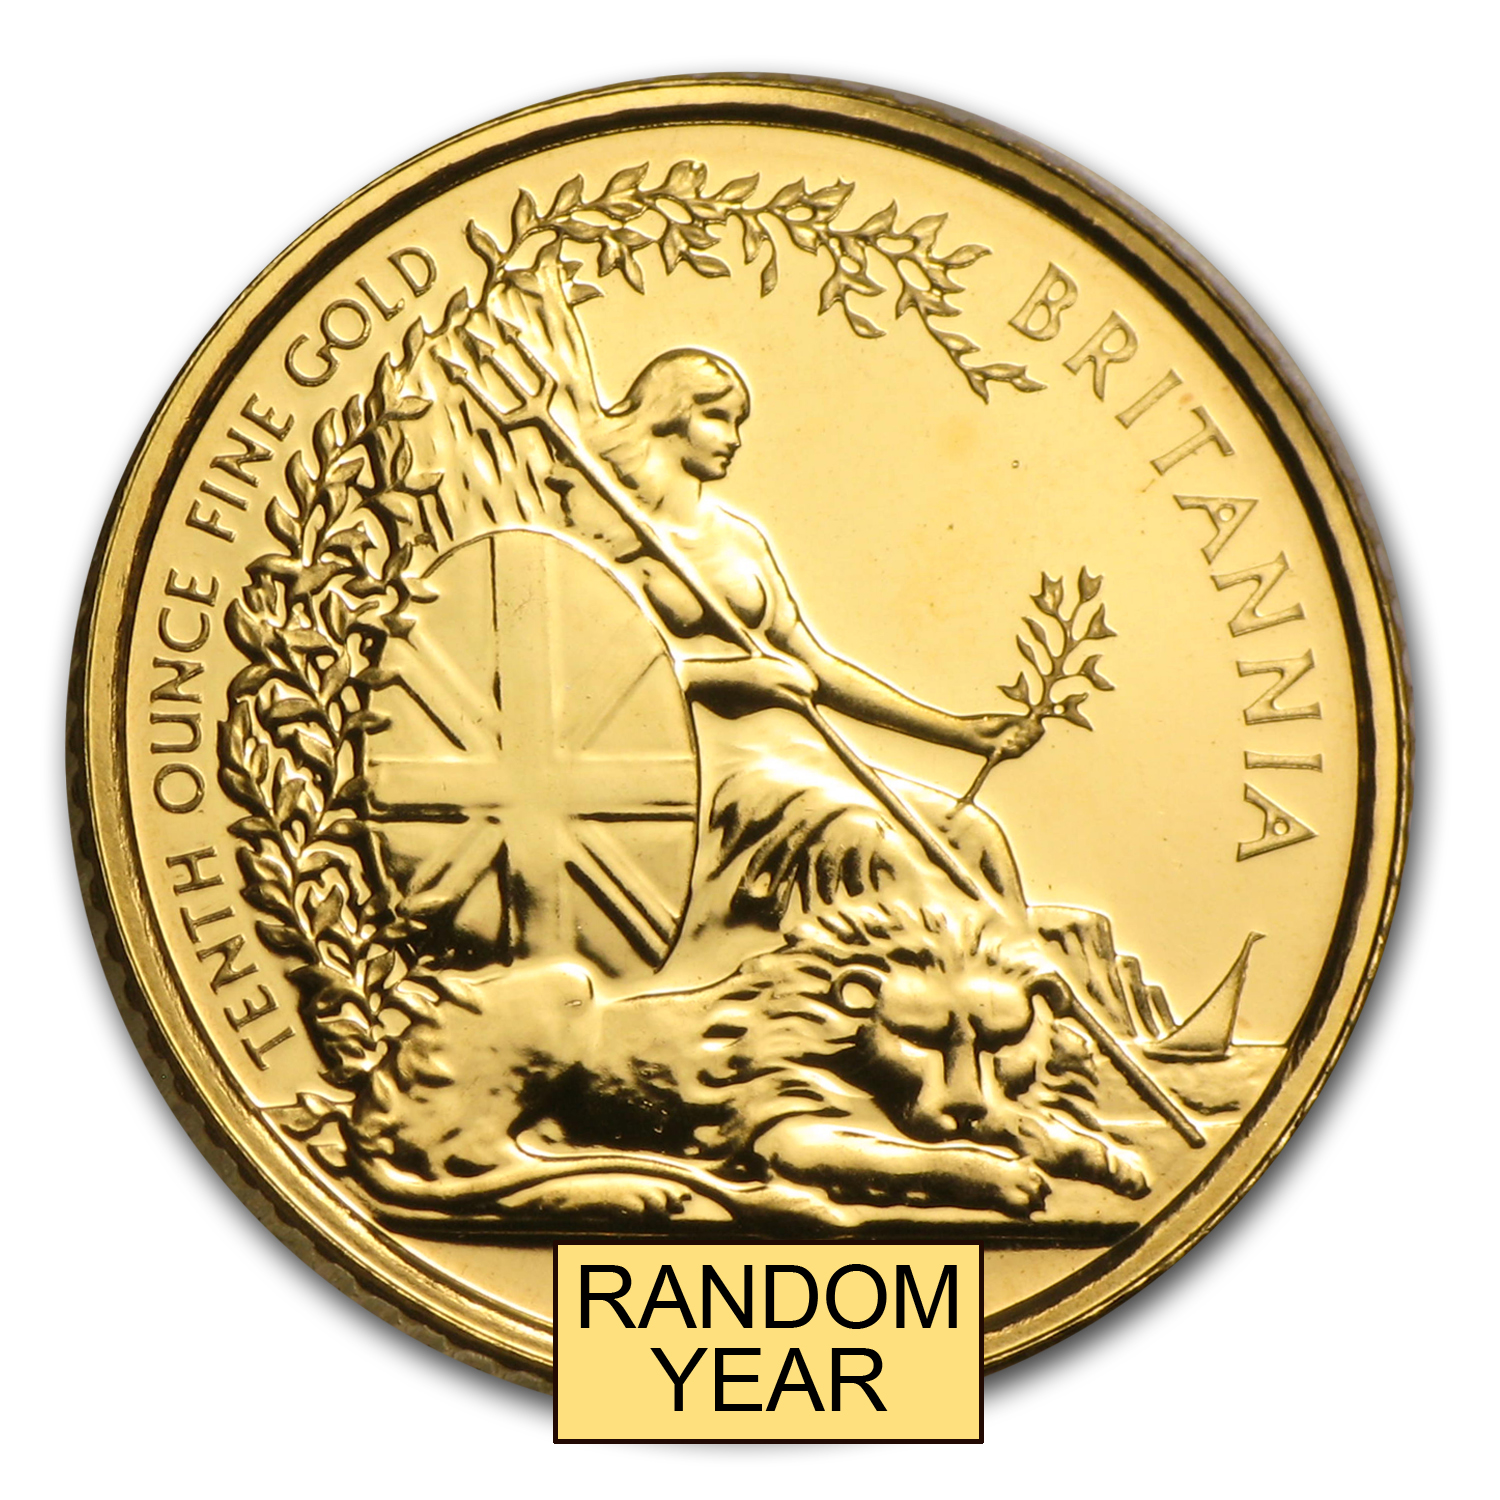 1/10 oz Gold Britannia Random Year - Proof &/or Uncirculated